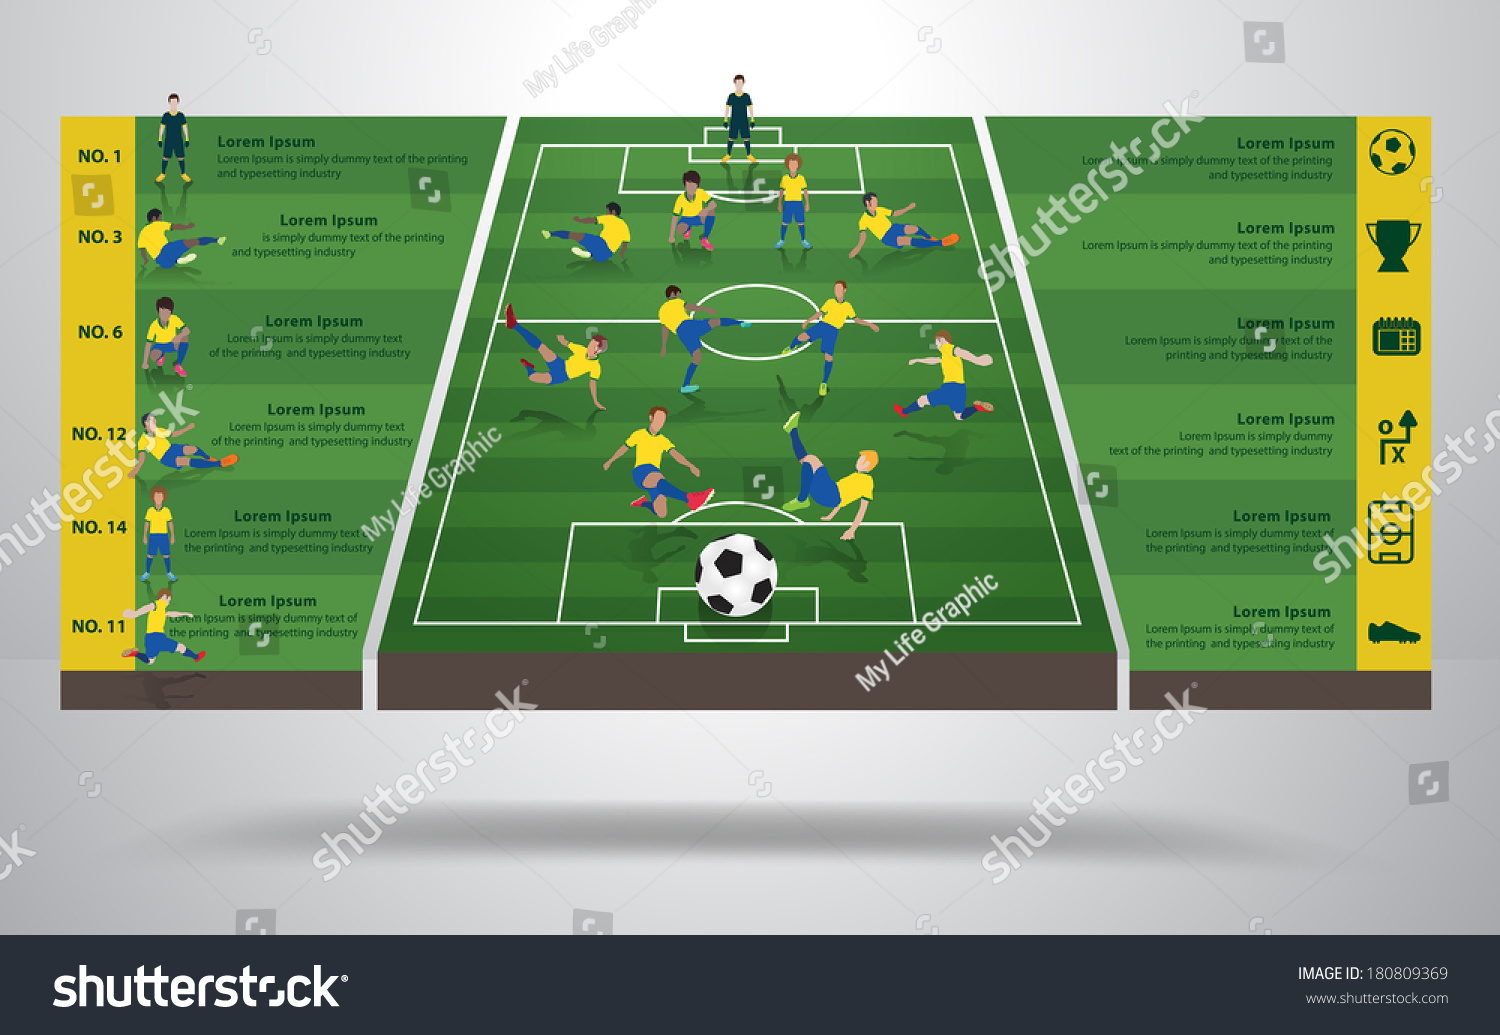 Brazilian soccer football player different positions stock vector brazilian soccer football player in different positions soccer field background soccer icons modern pooptronica Choice Image